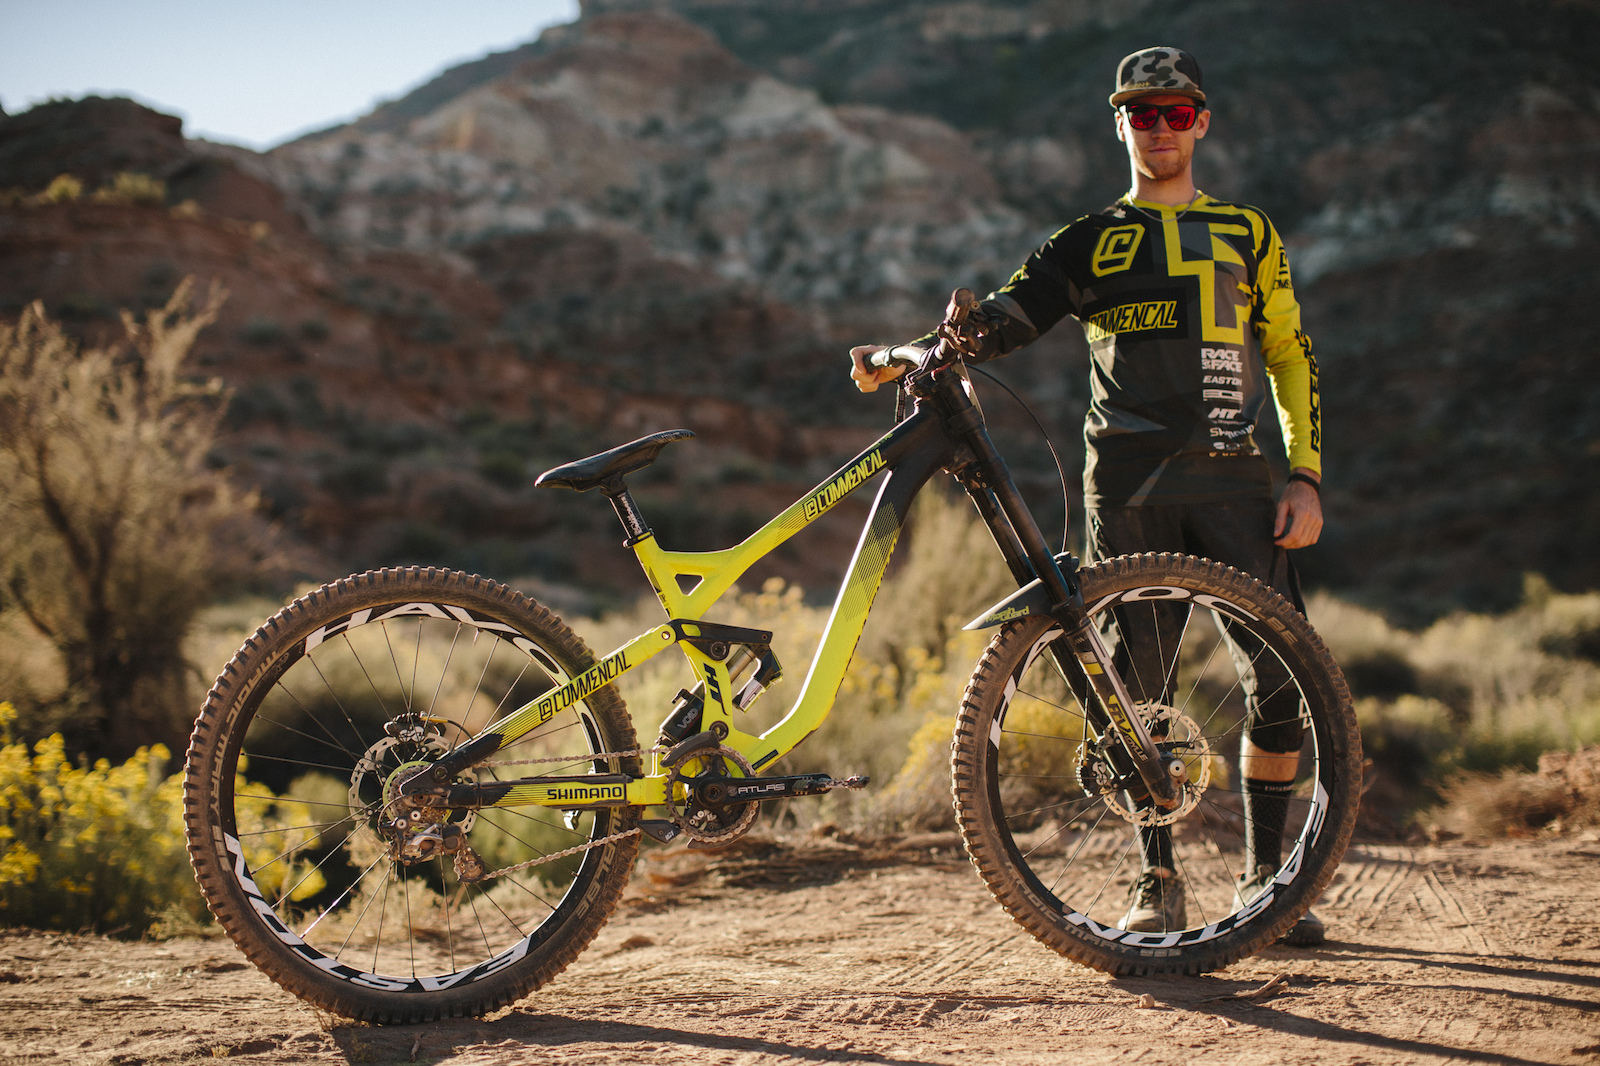 Remy Metailler at RedBull Rampage 2015 Virgin Utah USA